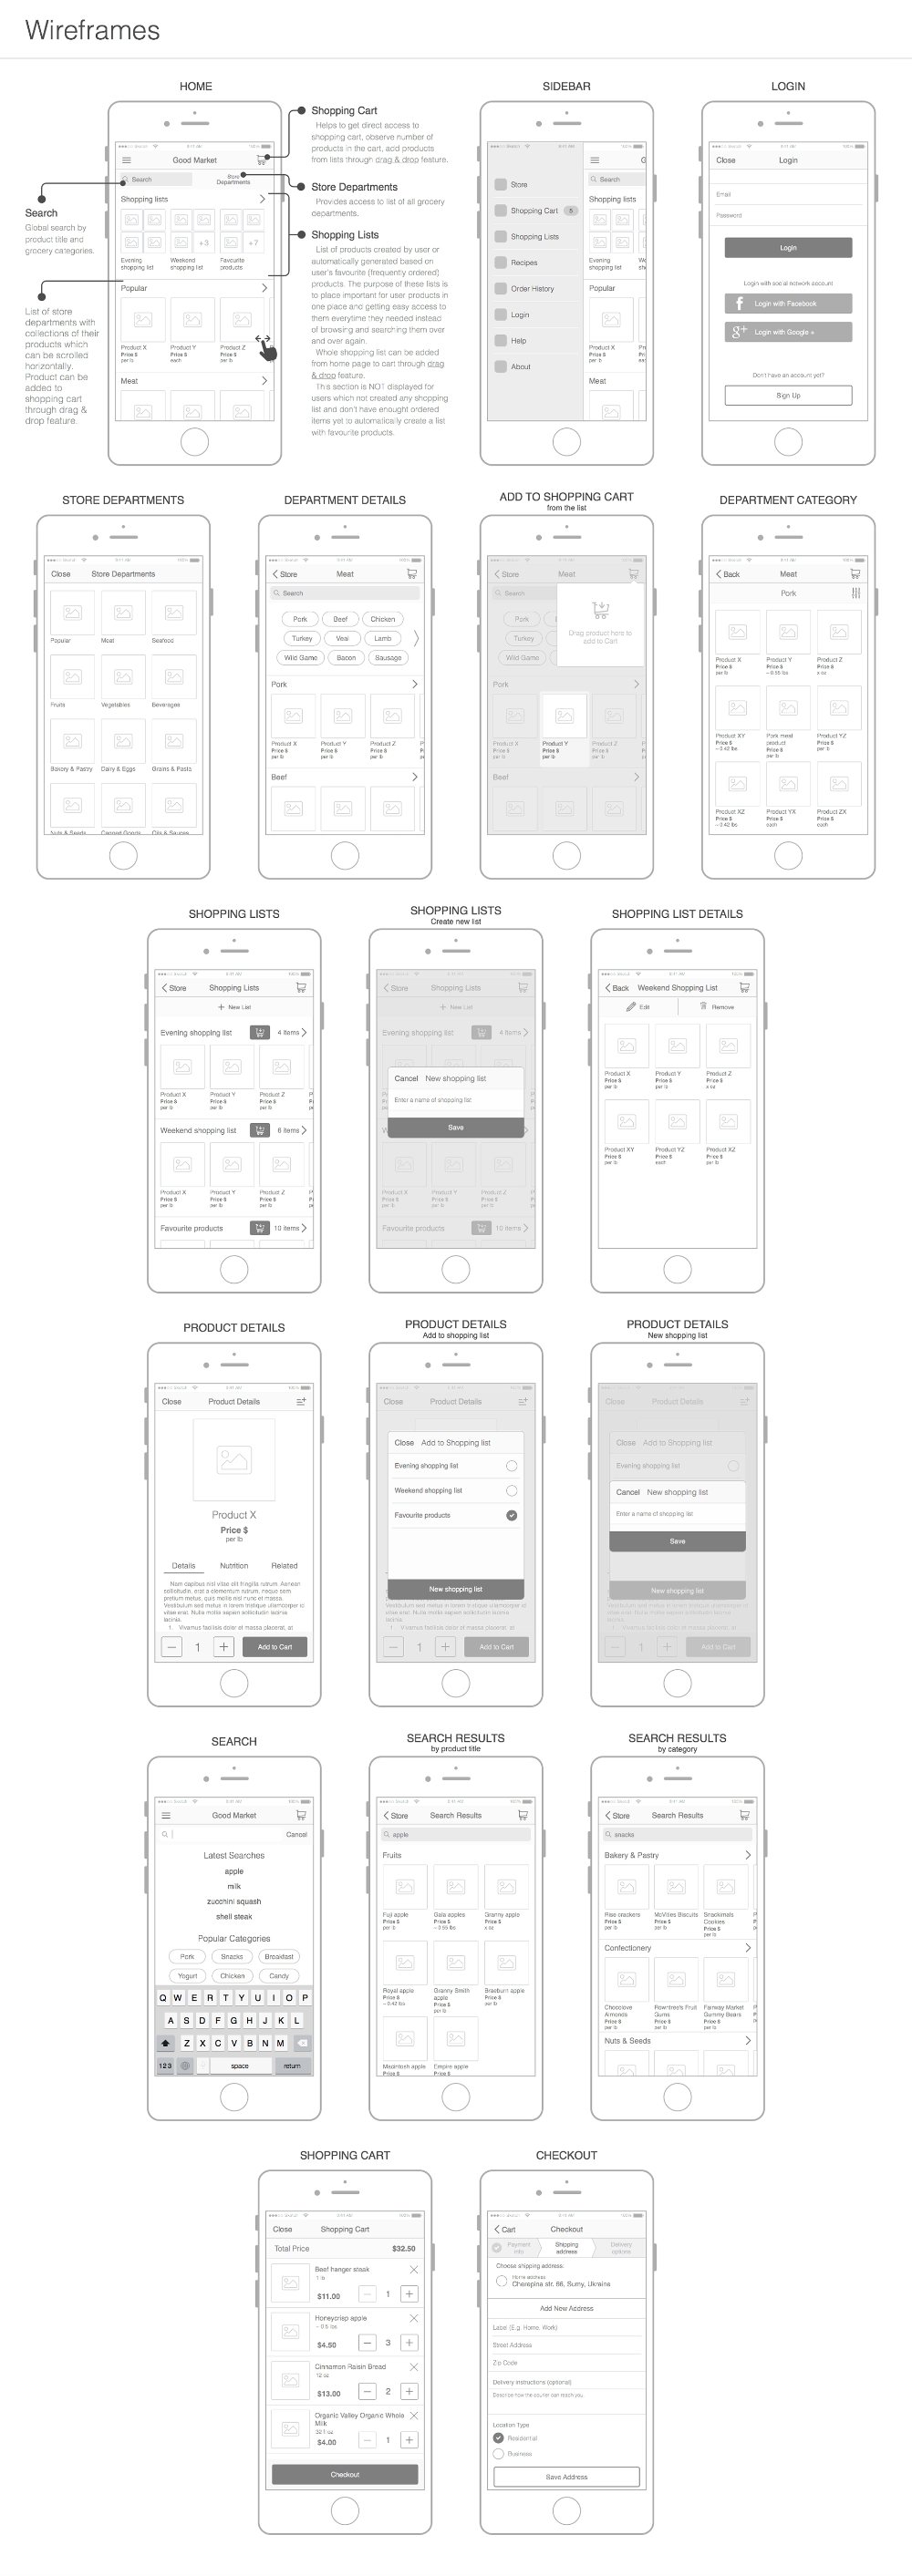 UX Wireframes for Online Grocery Shopping Mobile App on